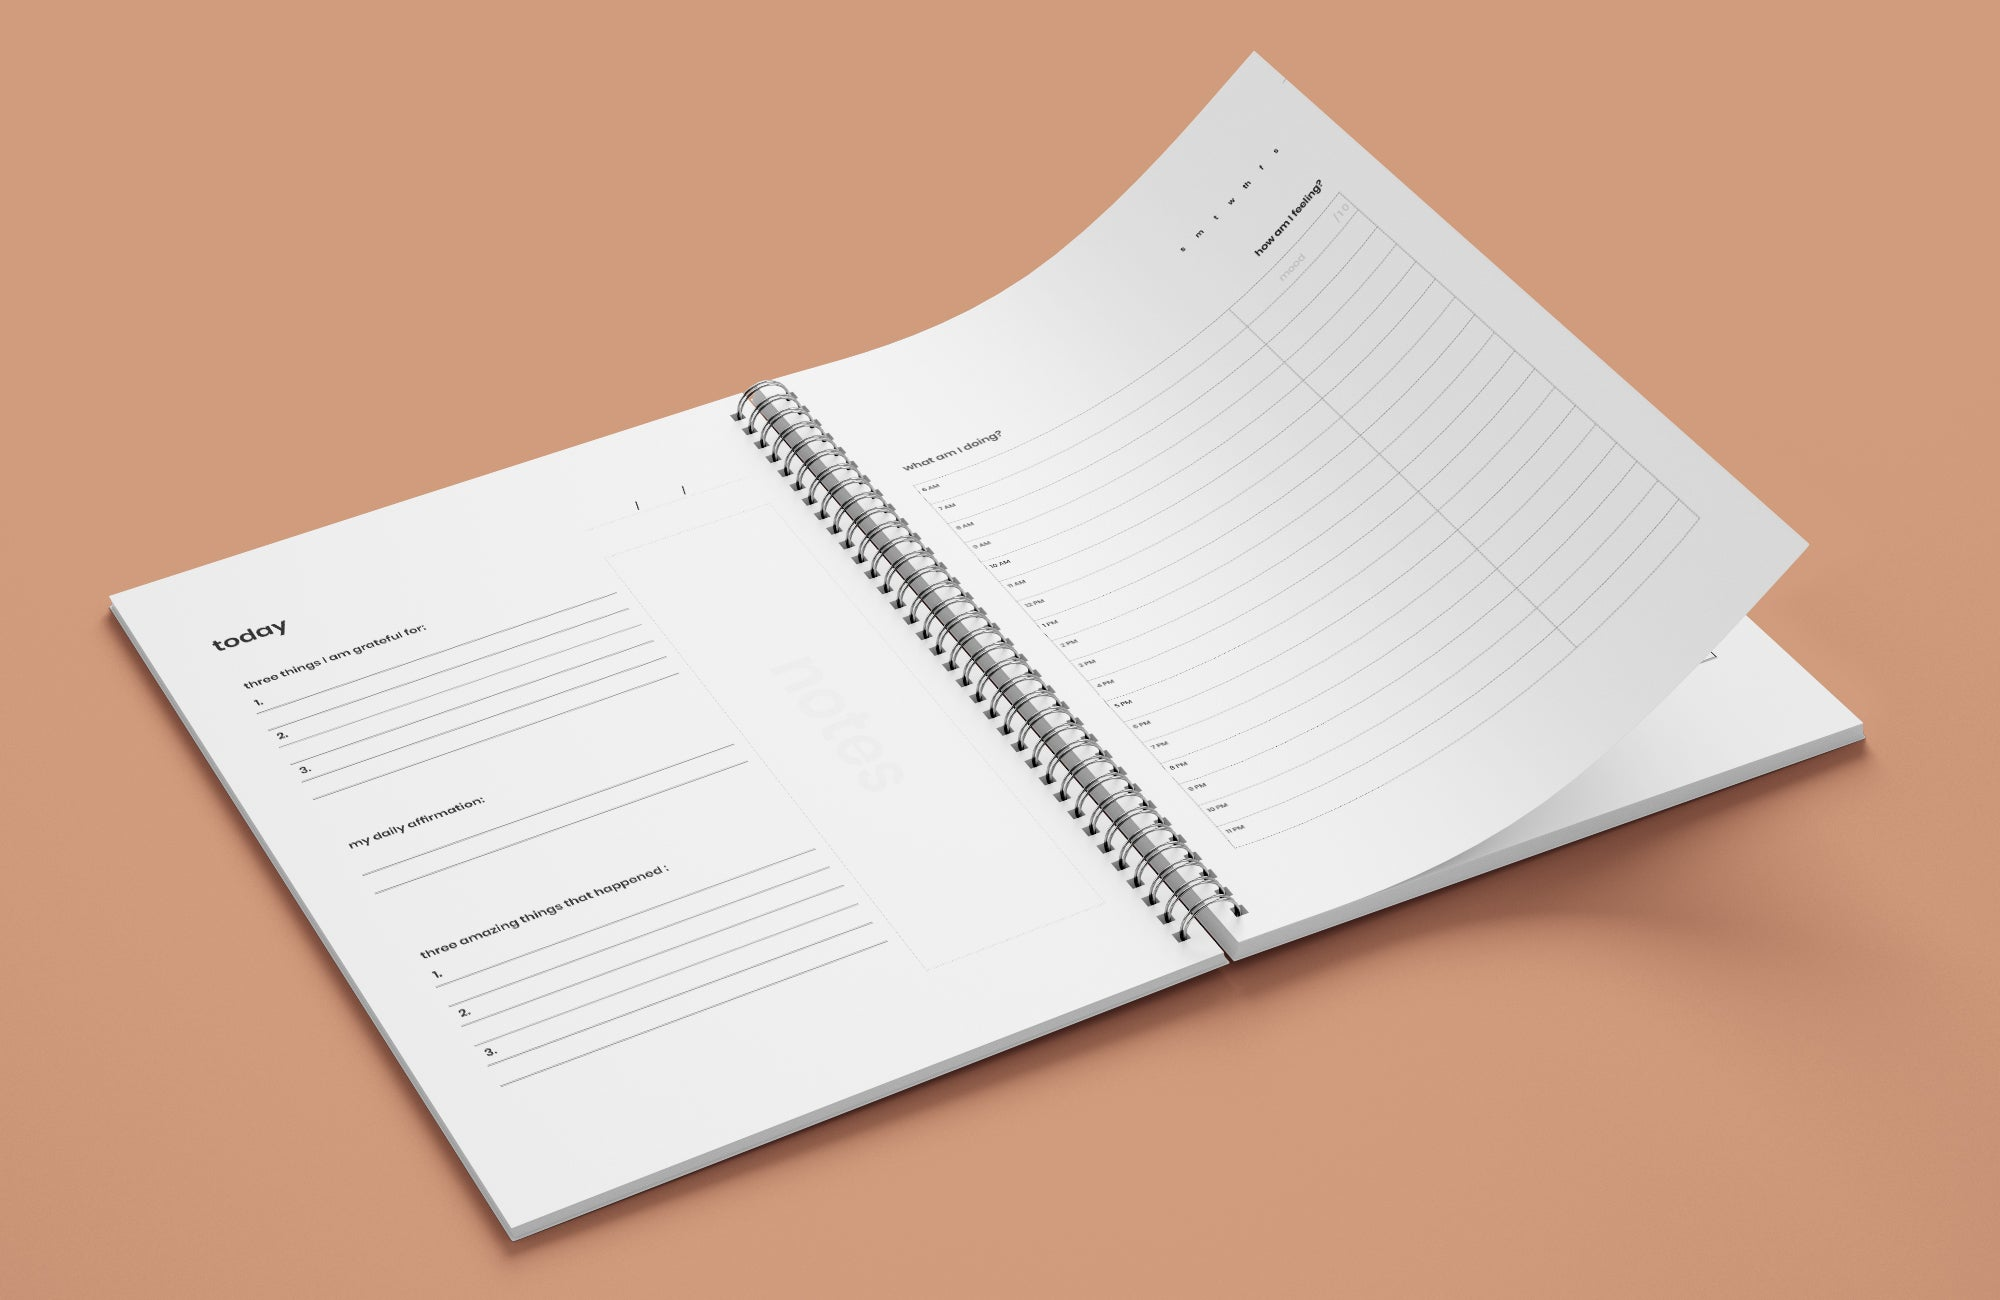 Take Note Wellness Journals help you gain clarity into how your habits, behaviour and your mood all relate to each other, designed using principles of CBT.